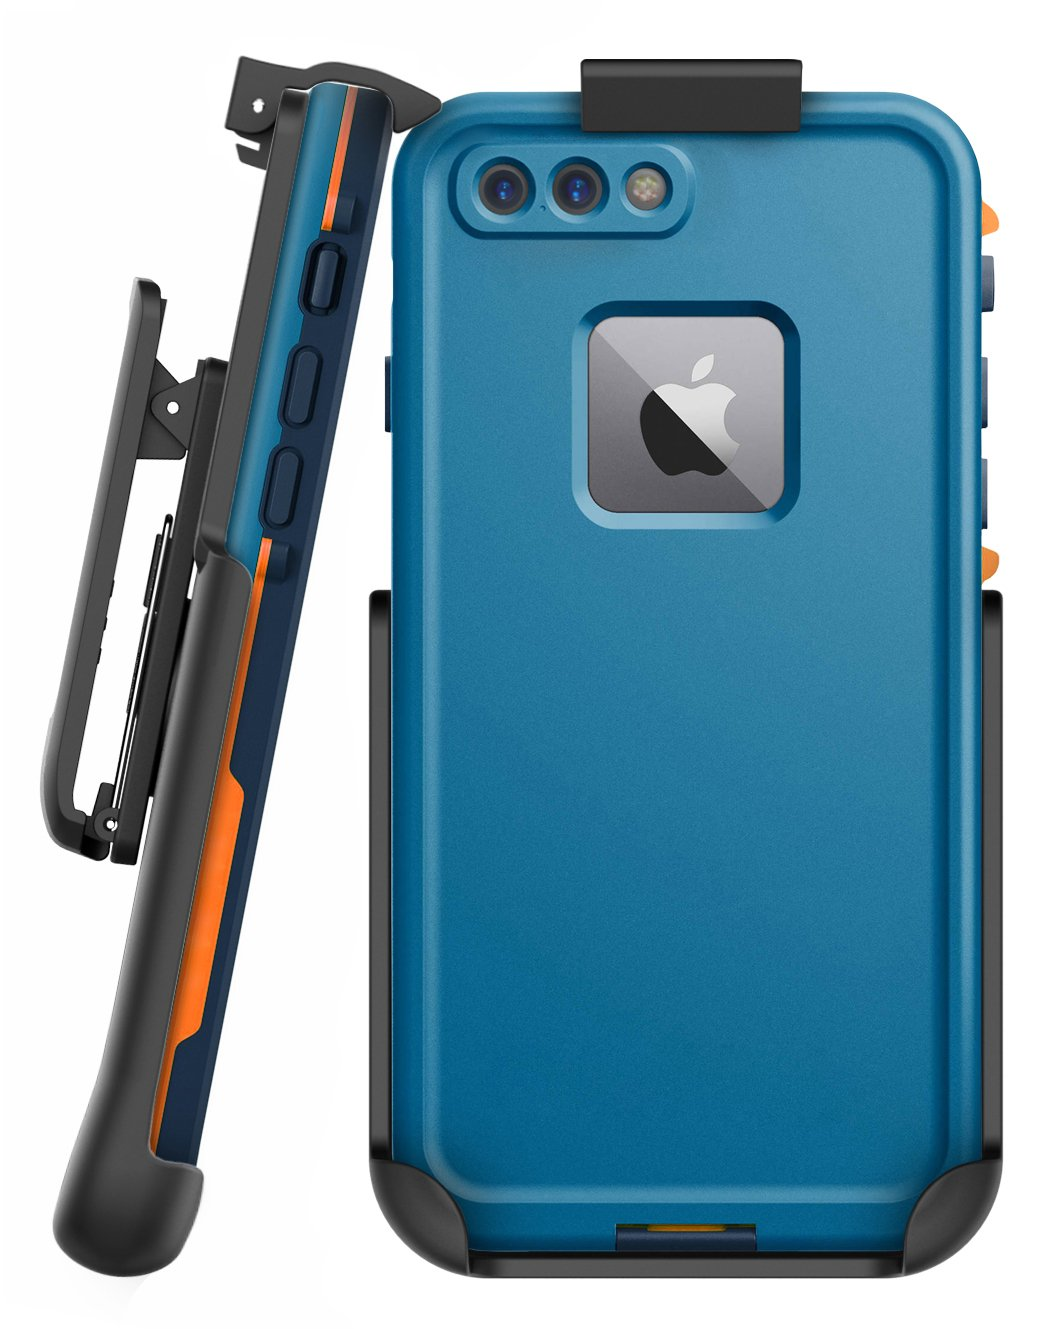 Encased Belt Clip Holster for Lifeproof Fre Case - iPhone 7 Plus 5.5'' (case not included)